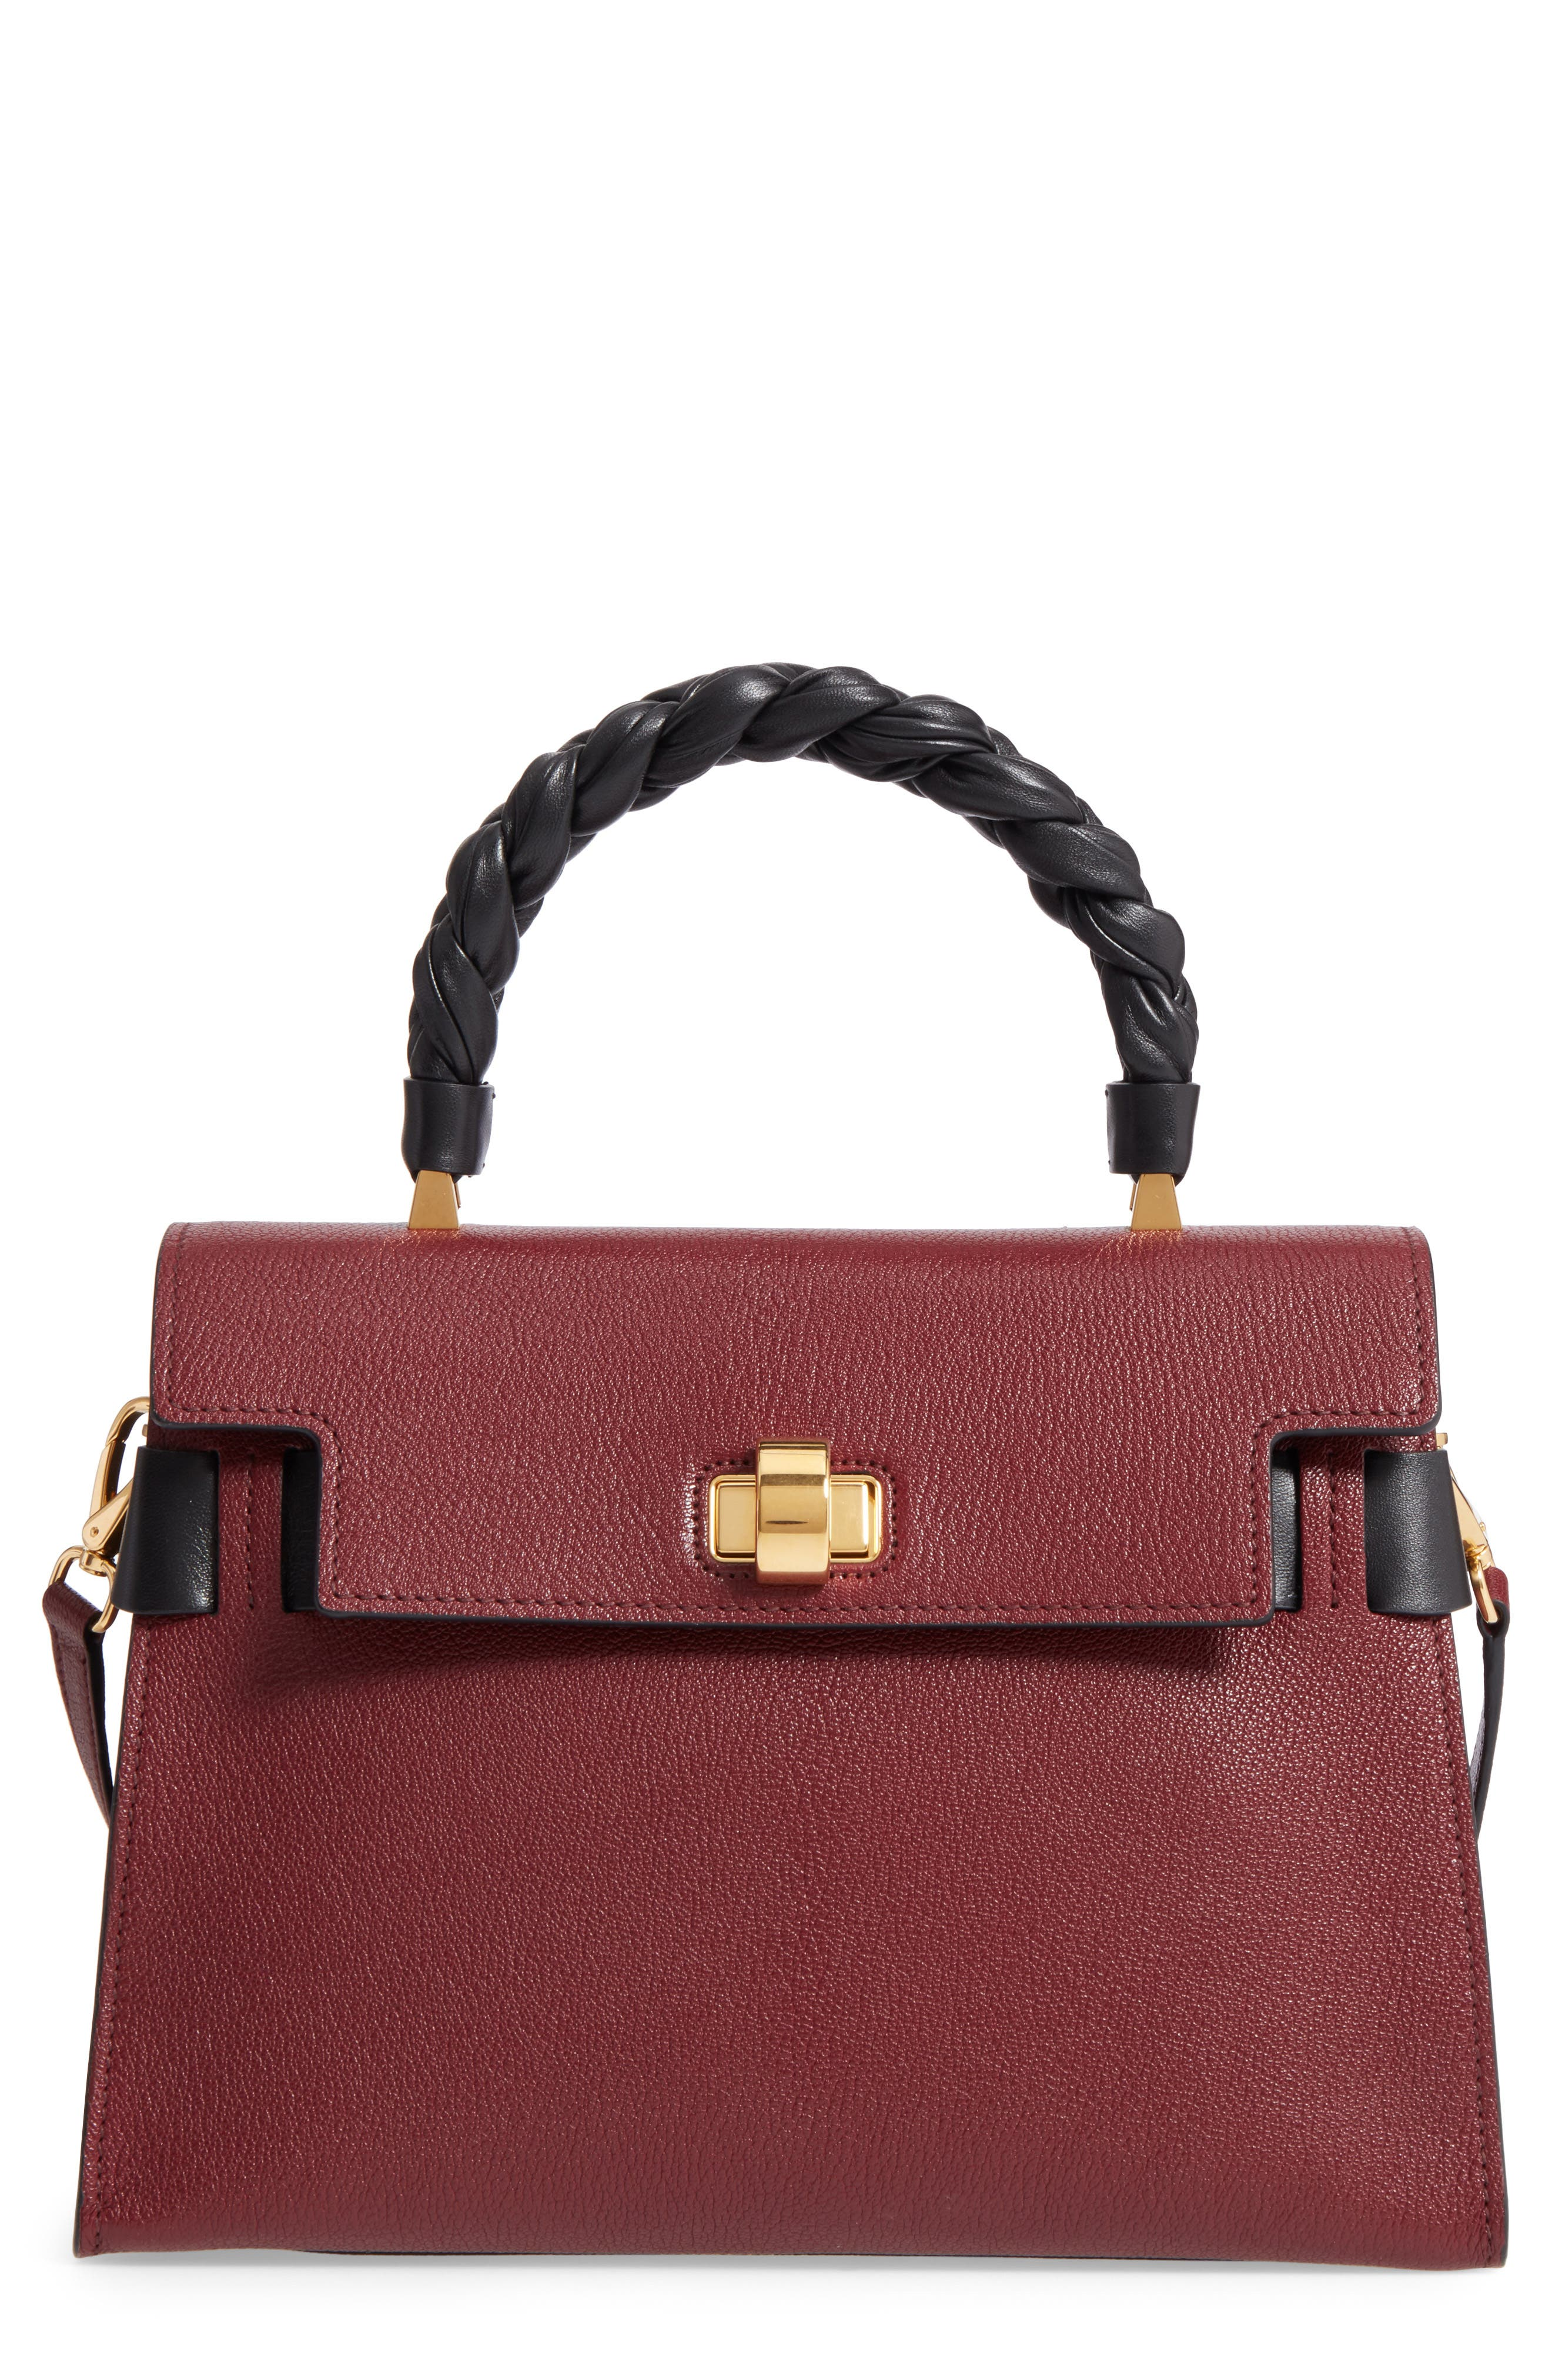 Madras Click Goatskin Leather Satchel,                             Main thumbnail 1, color,                             930